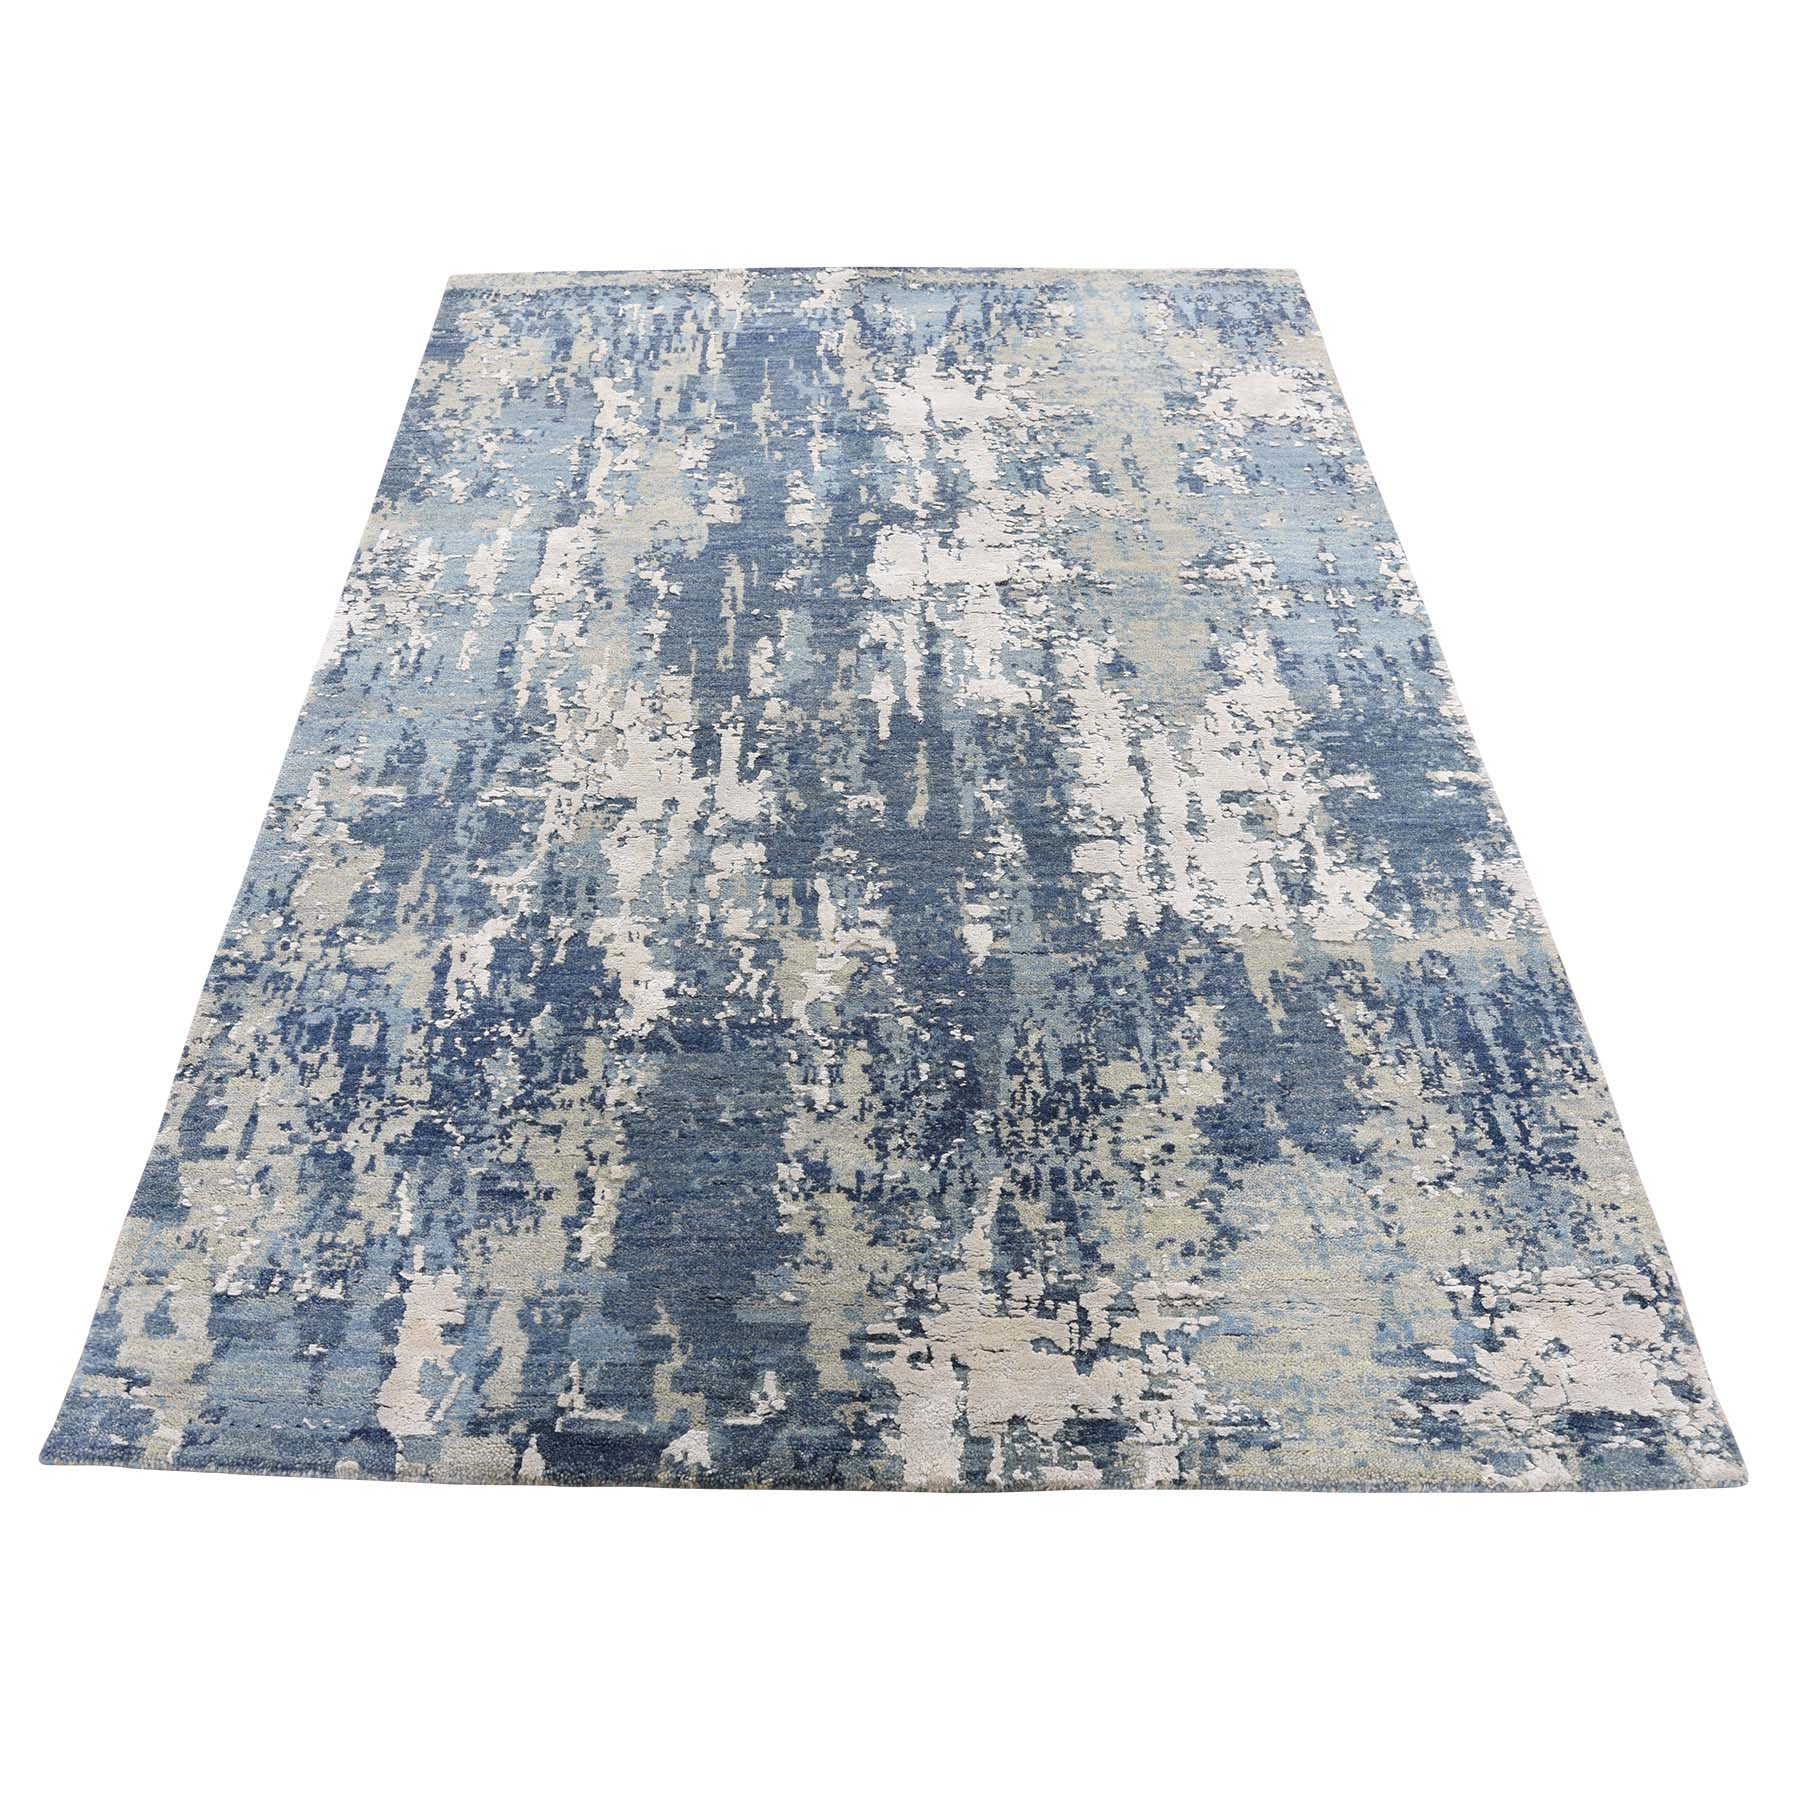 Picture of: 4 X6 1 Blue Gray Abstract Design Wool And Pure Silk Hand Woven Oriental Rug